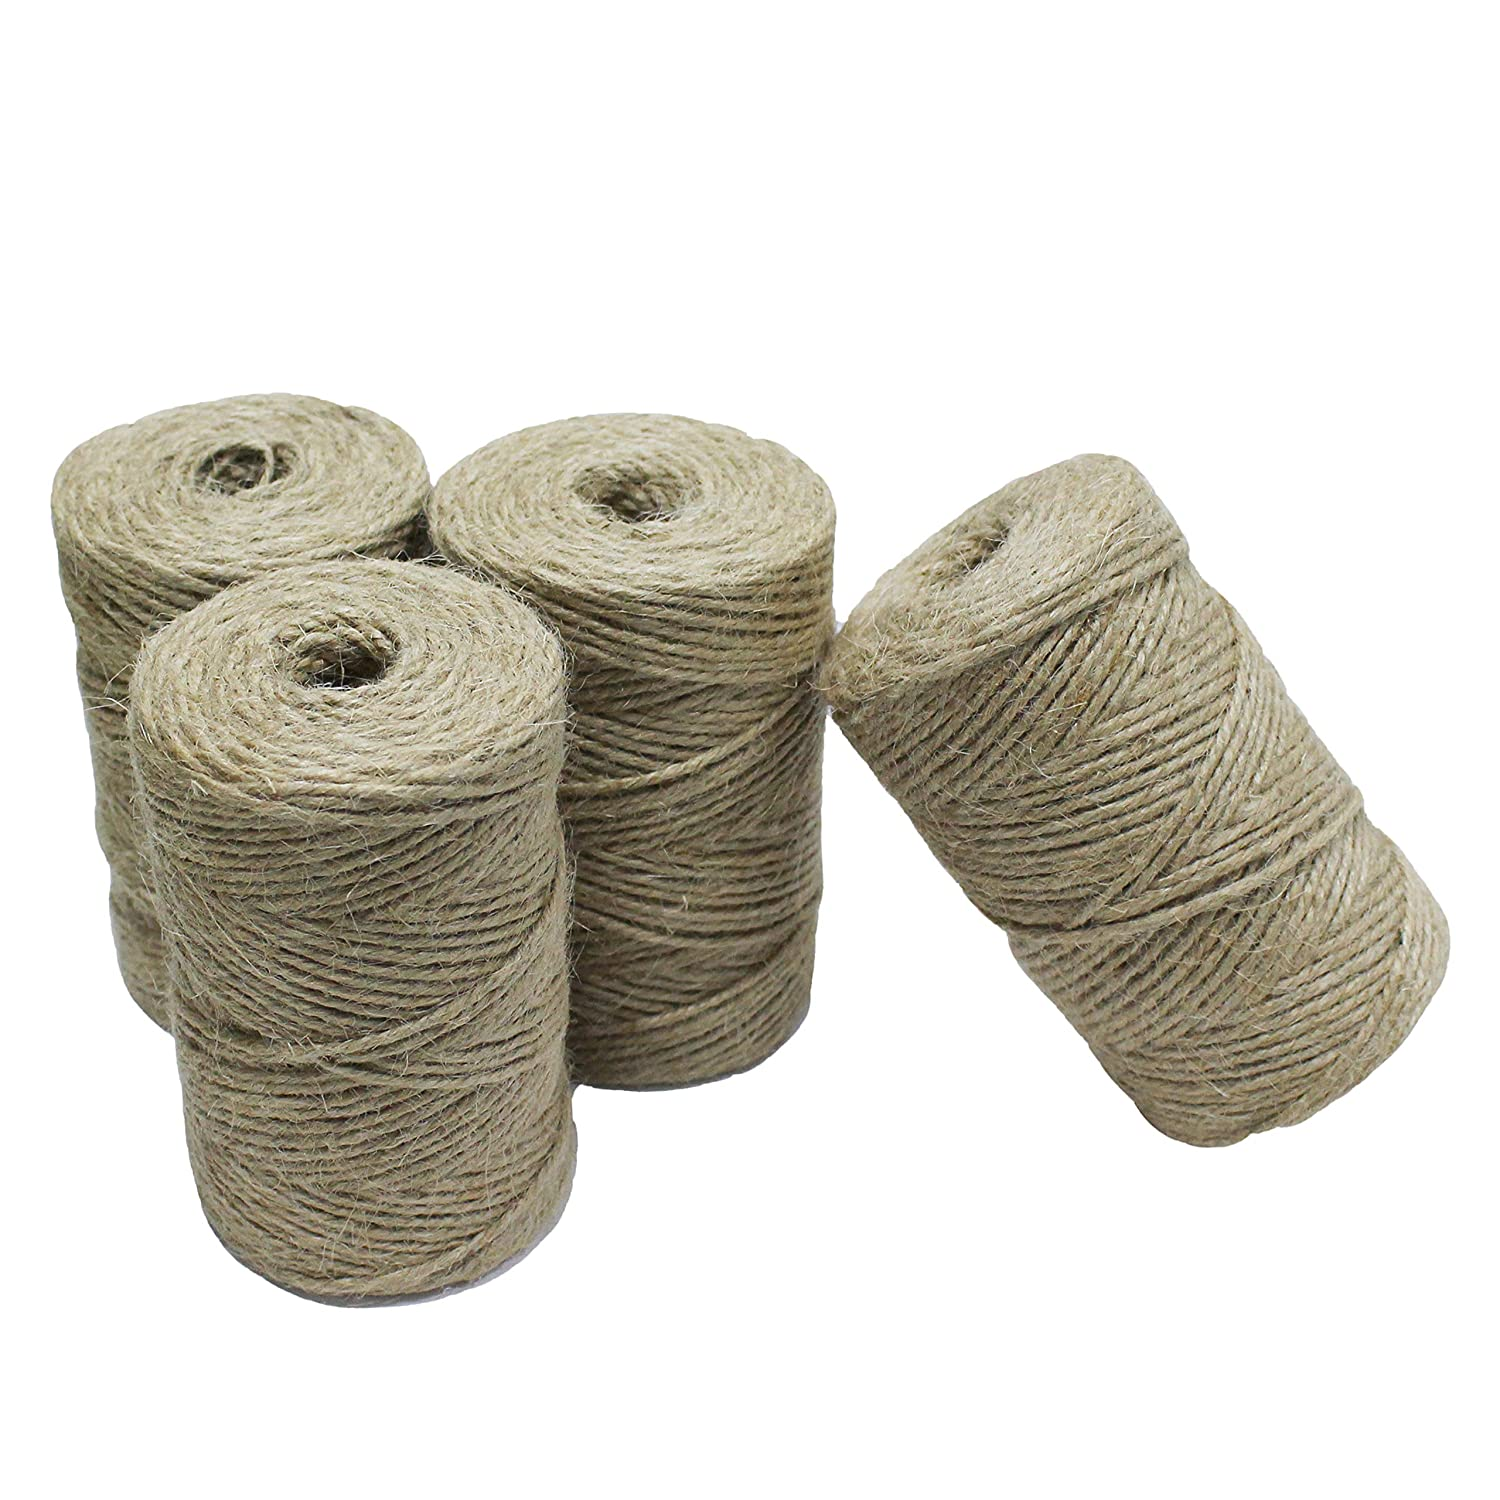 Gardzen Nature Jute Twine 4-Pack, Each Roll is 328 ft, Natural 3Ply Twisted String Rope for Toys Craft Gift DIY Gardening